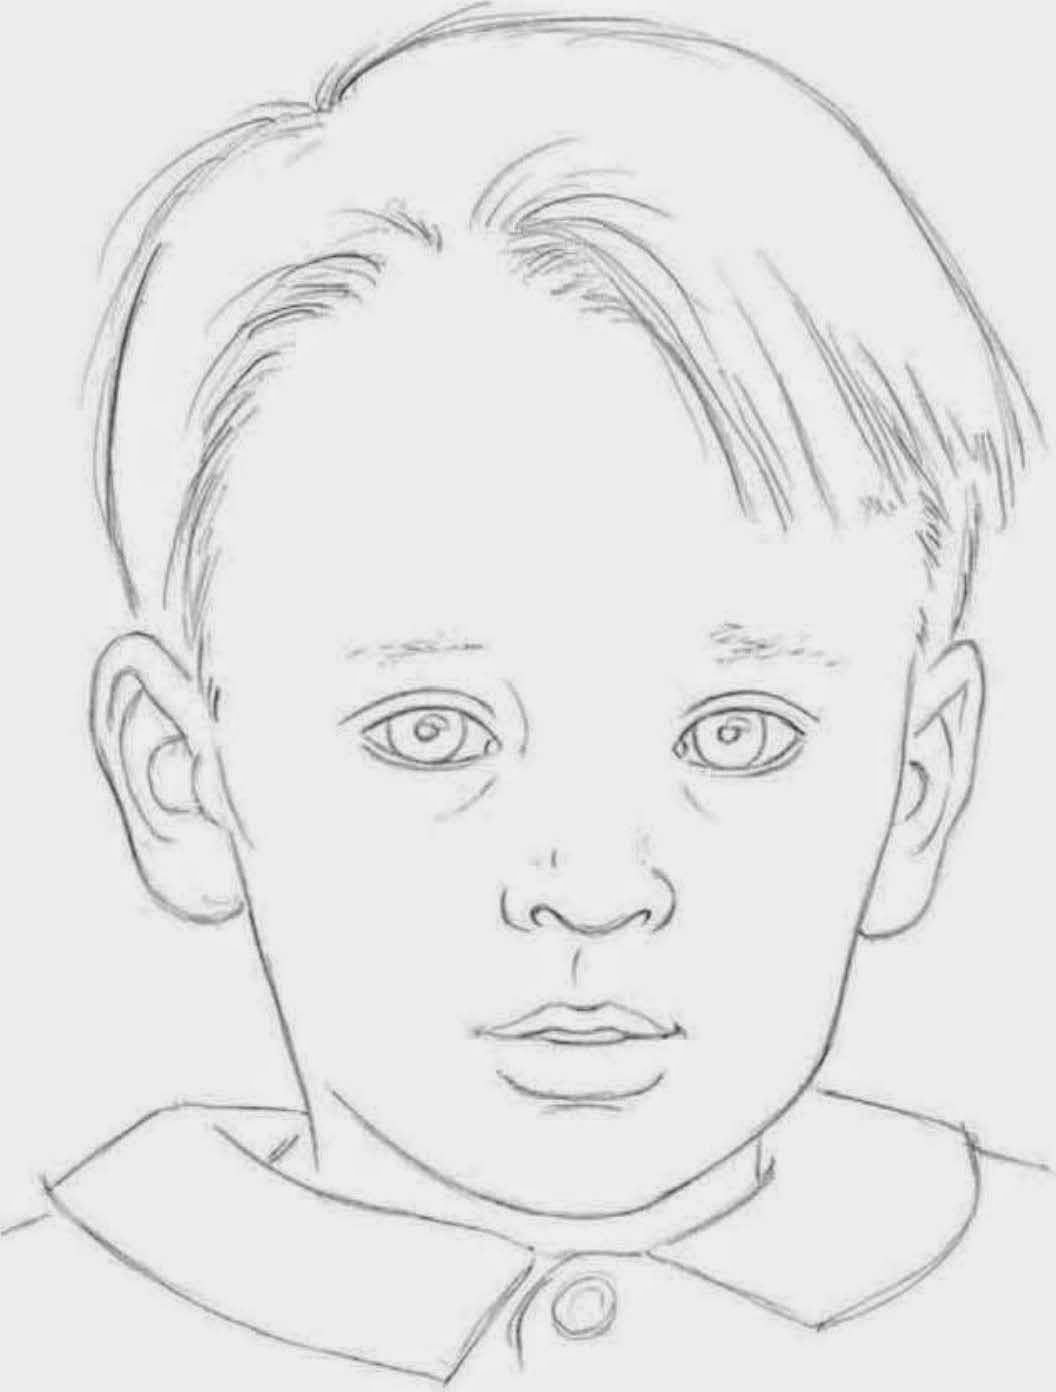 Childrens facial proportions